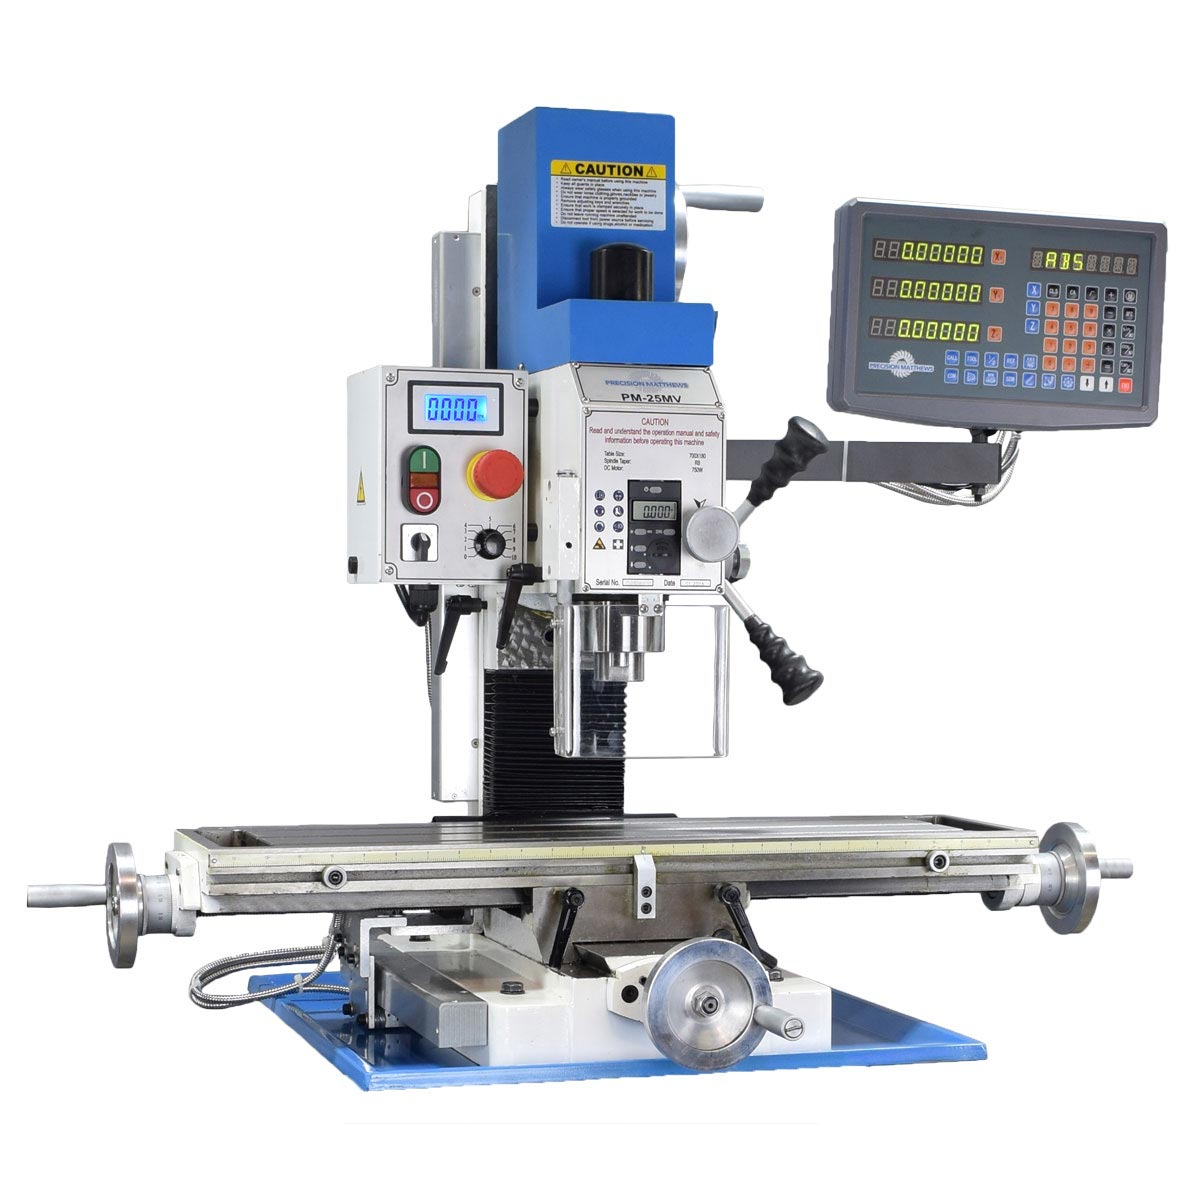 Choose Machine Choose An Option Pm 25mv Pm 25mv With 3